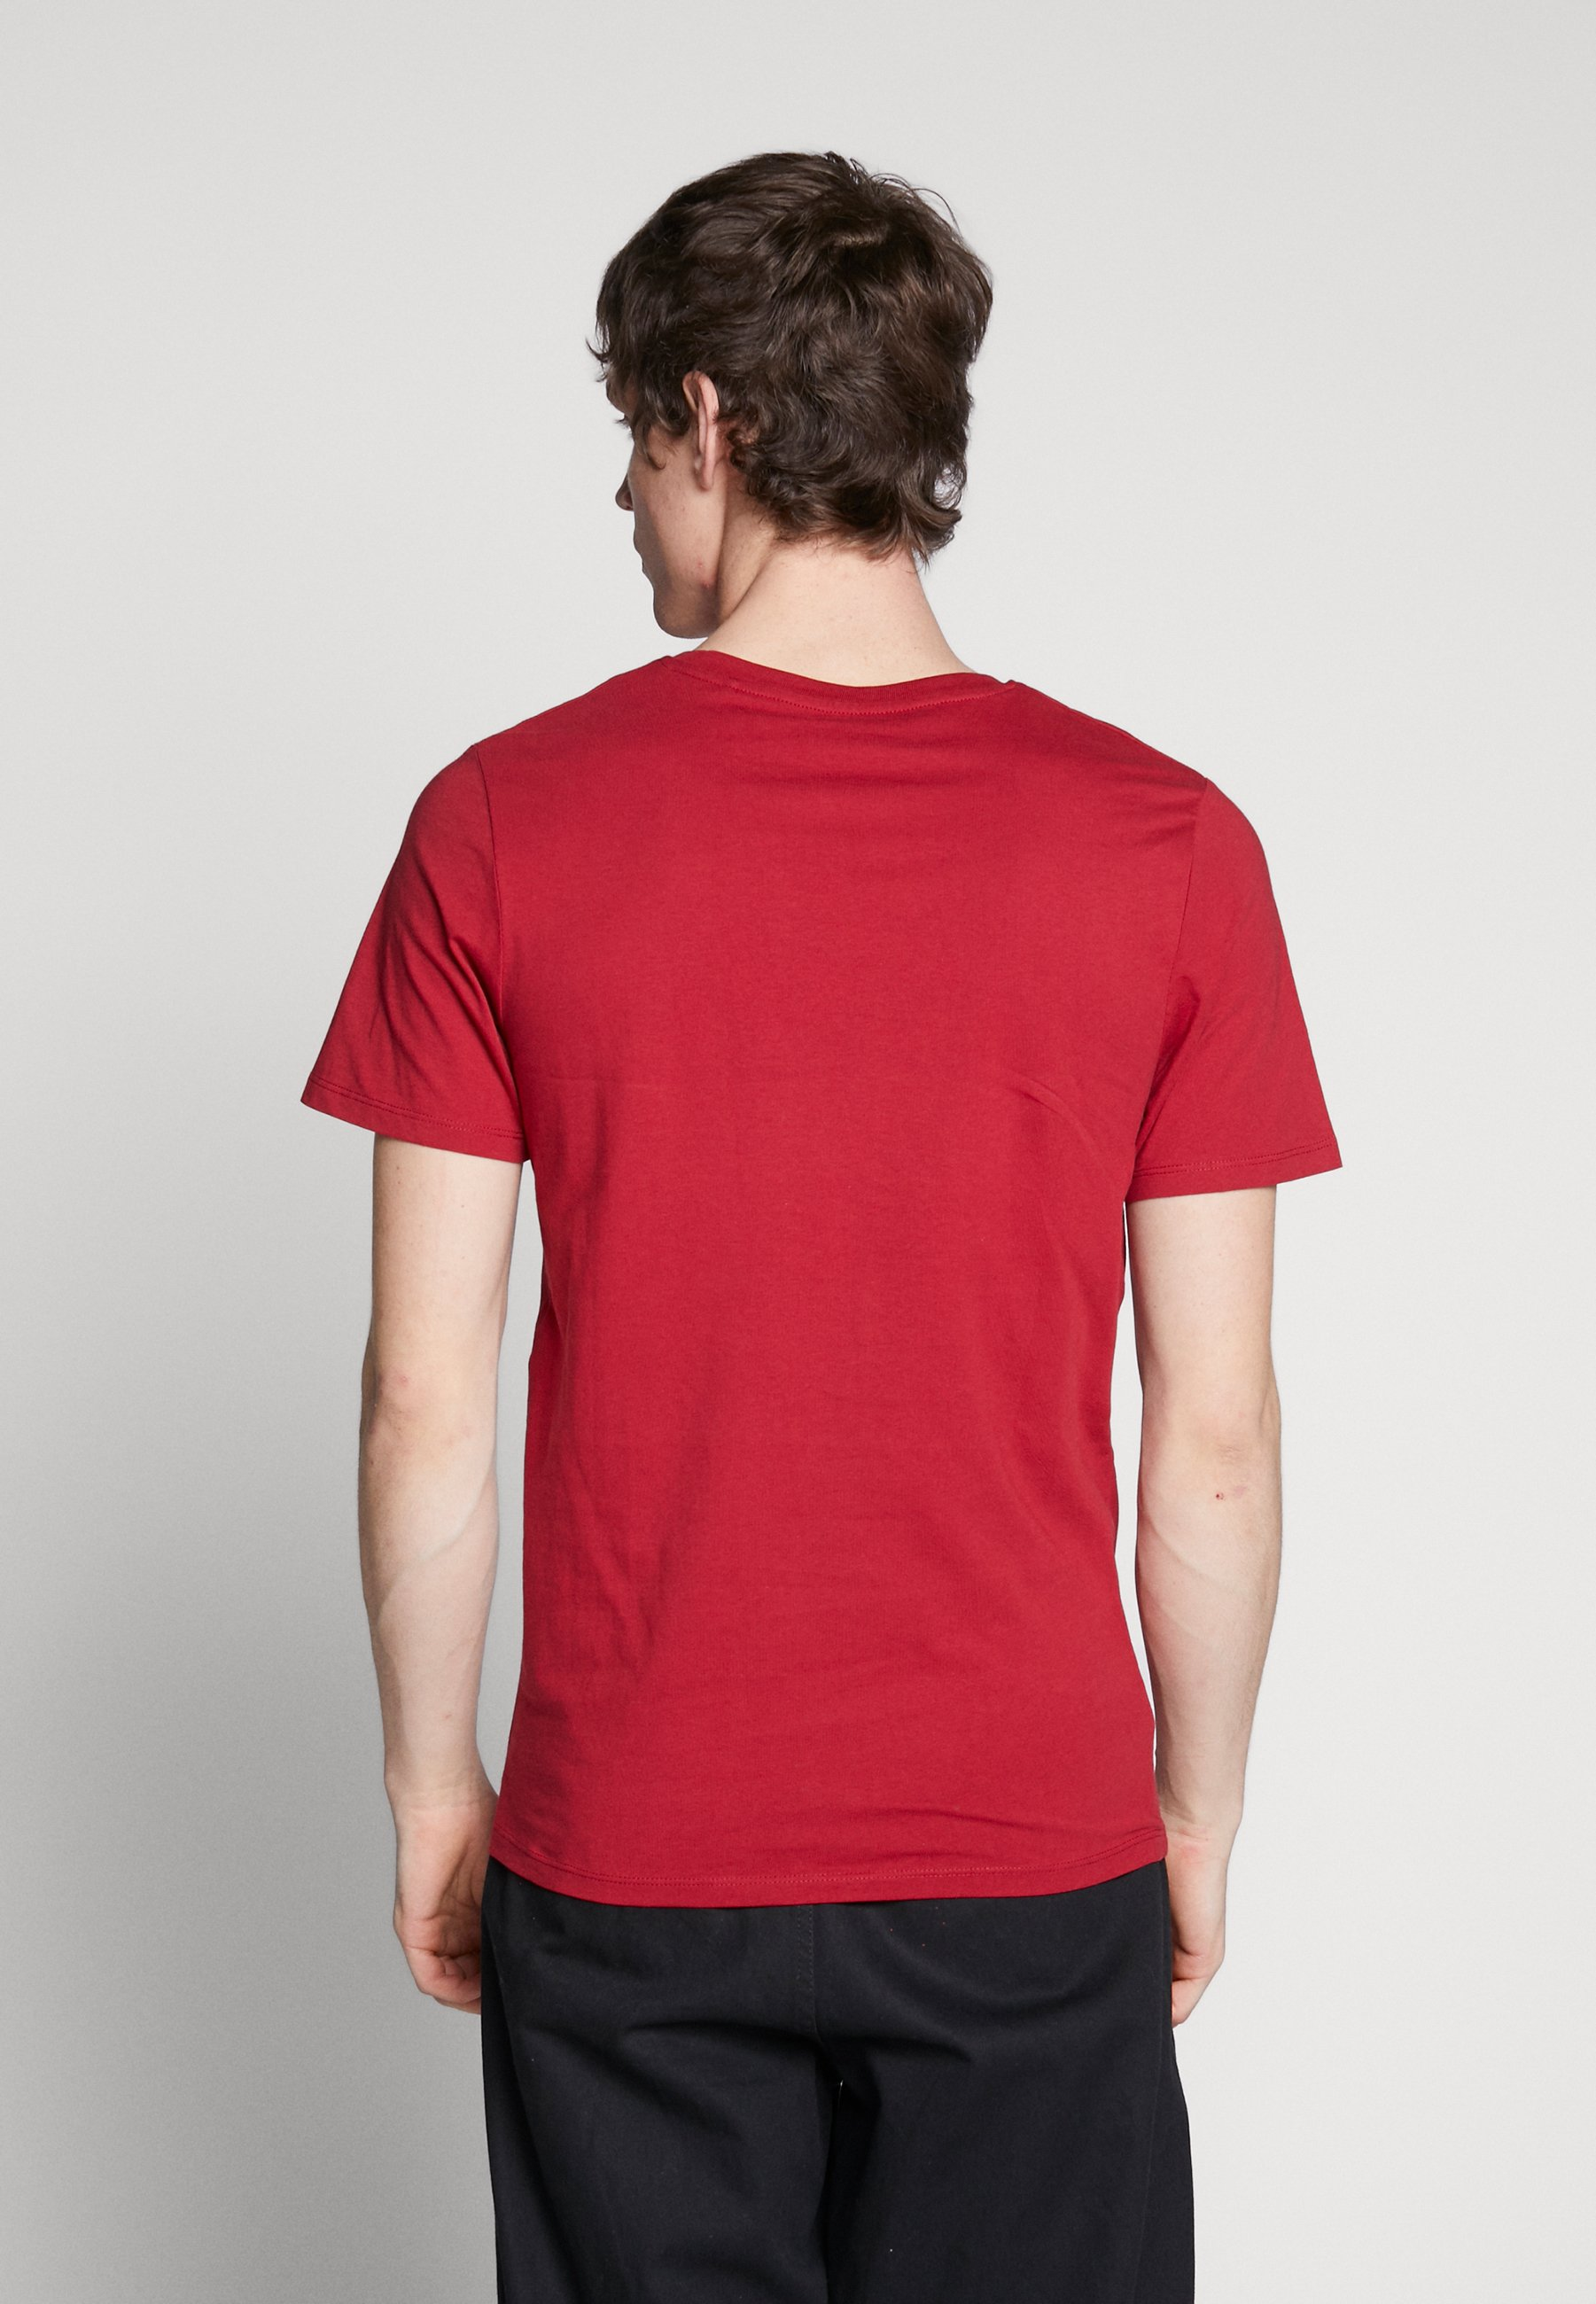 Jack & Jones JJEDENIM LOGO TEE O-NECK - Basic T-shirt - rio red/white 8uwDg